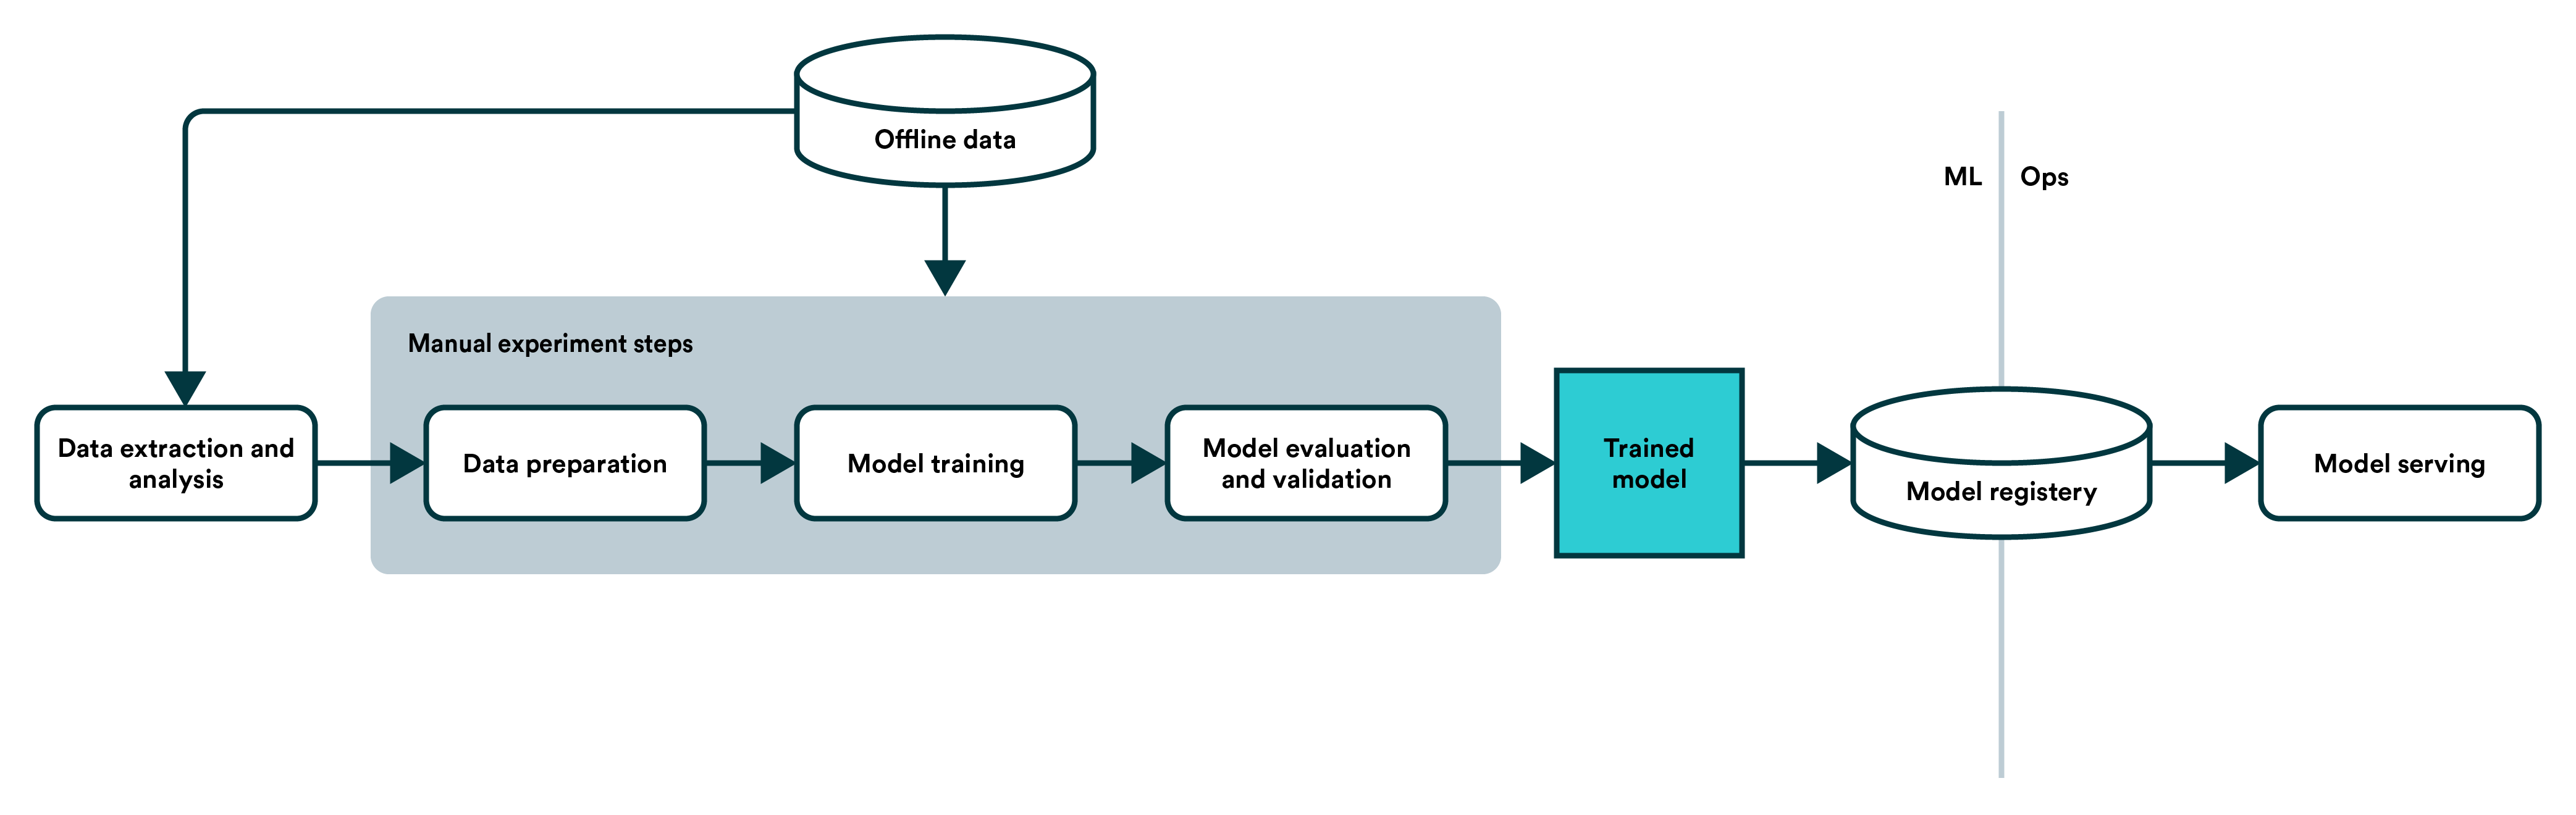 Machine Learning Pipeline - Manual Cycle